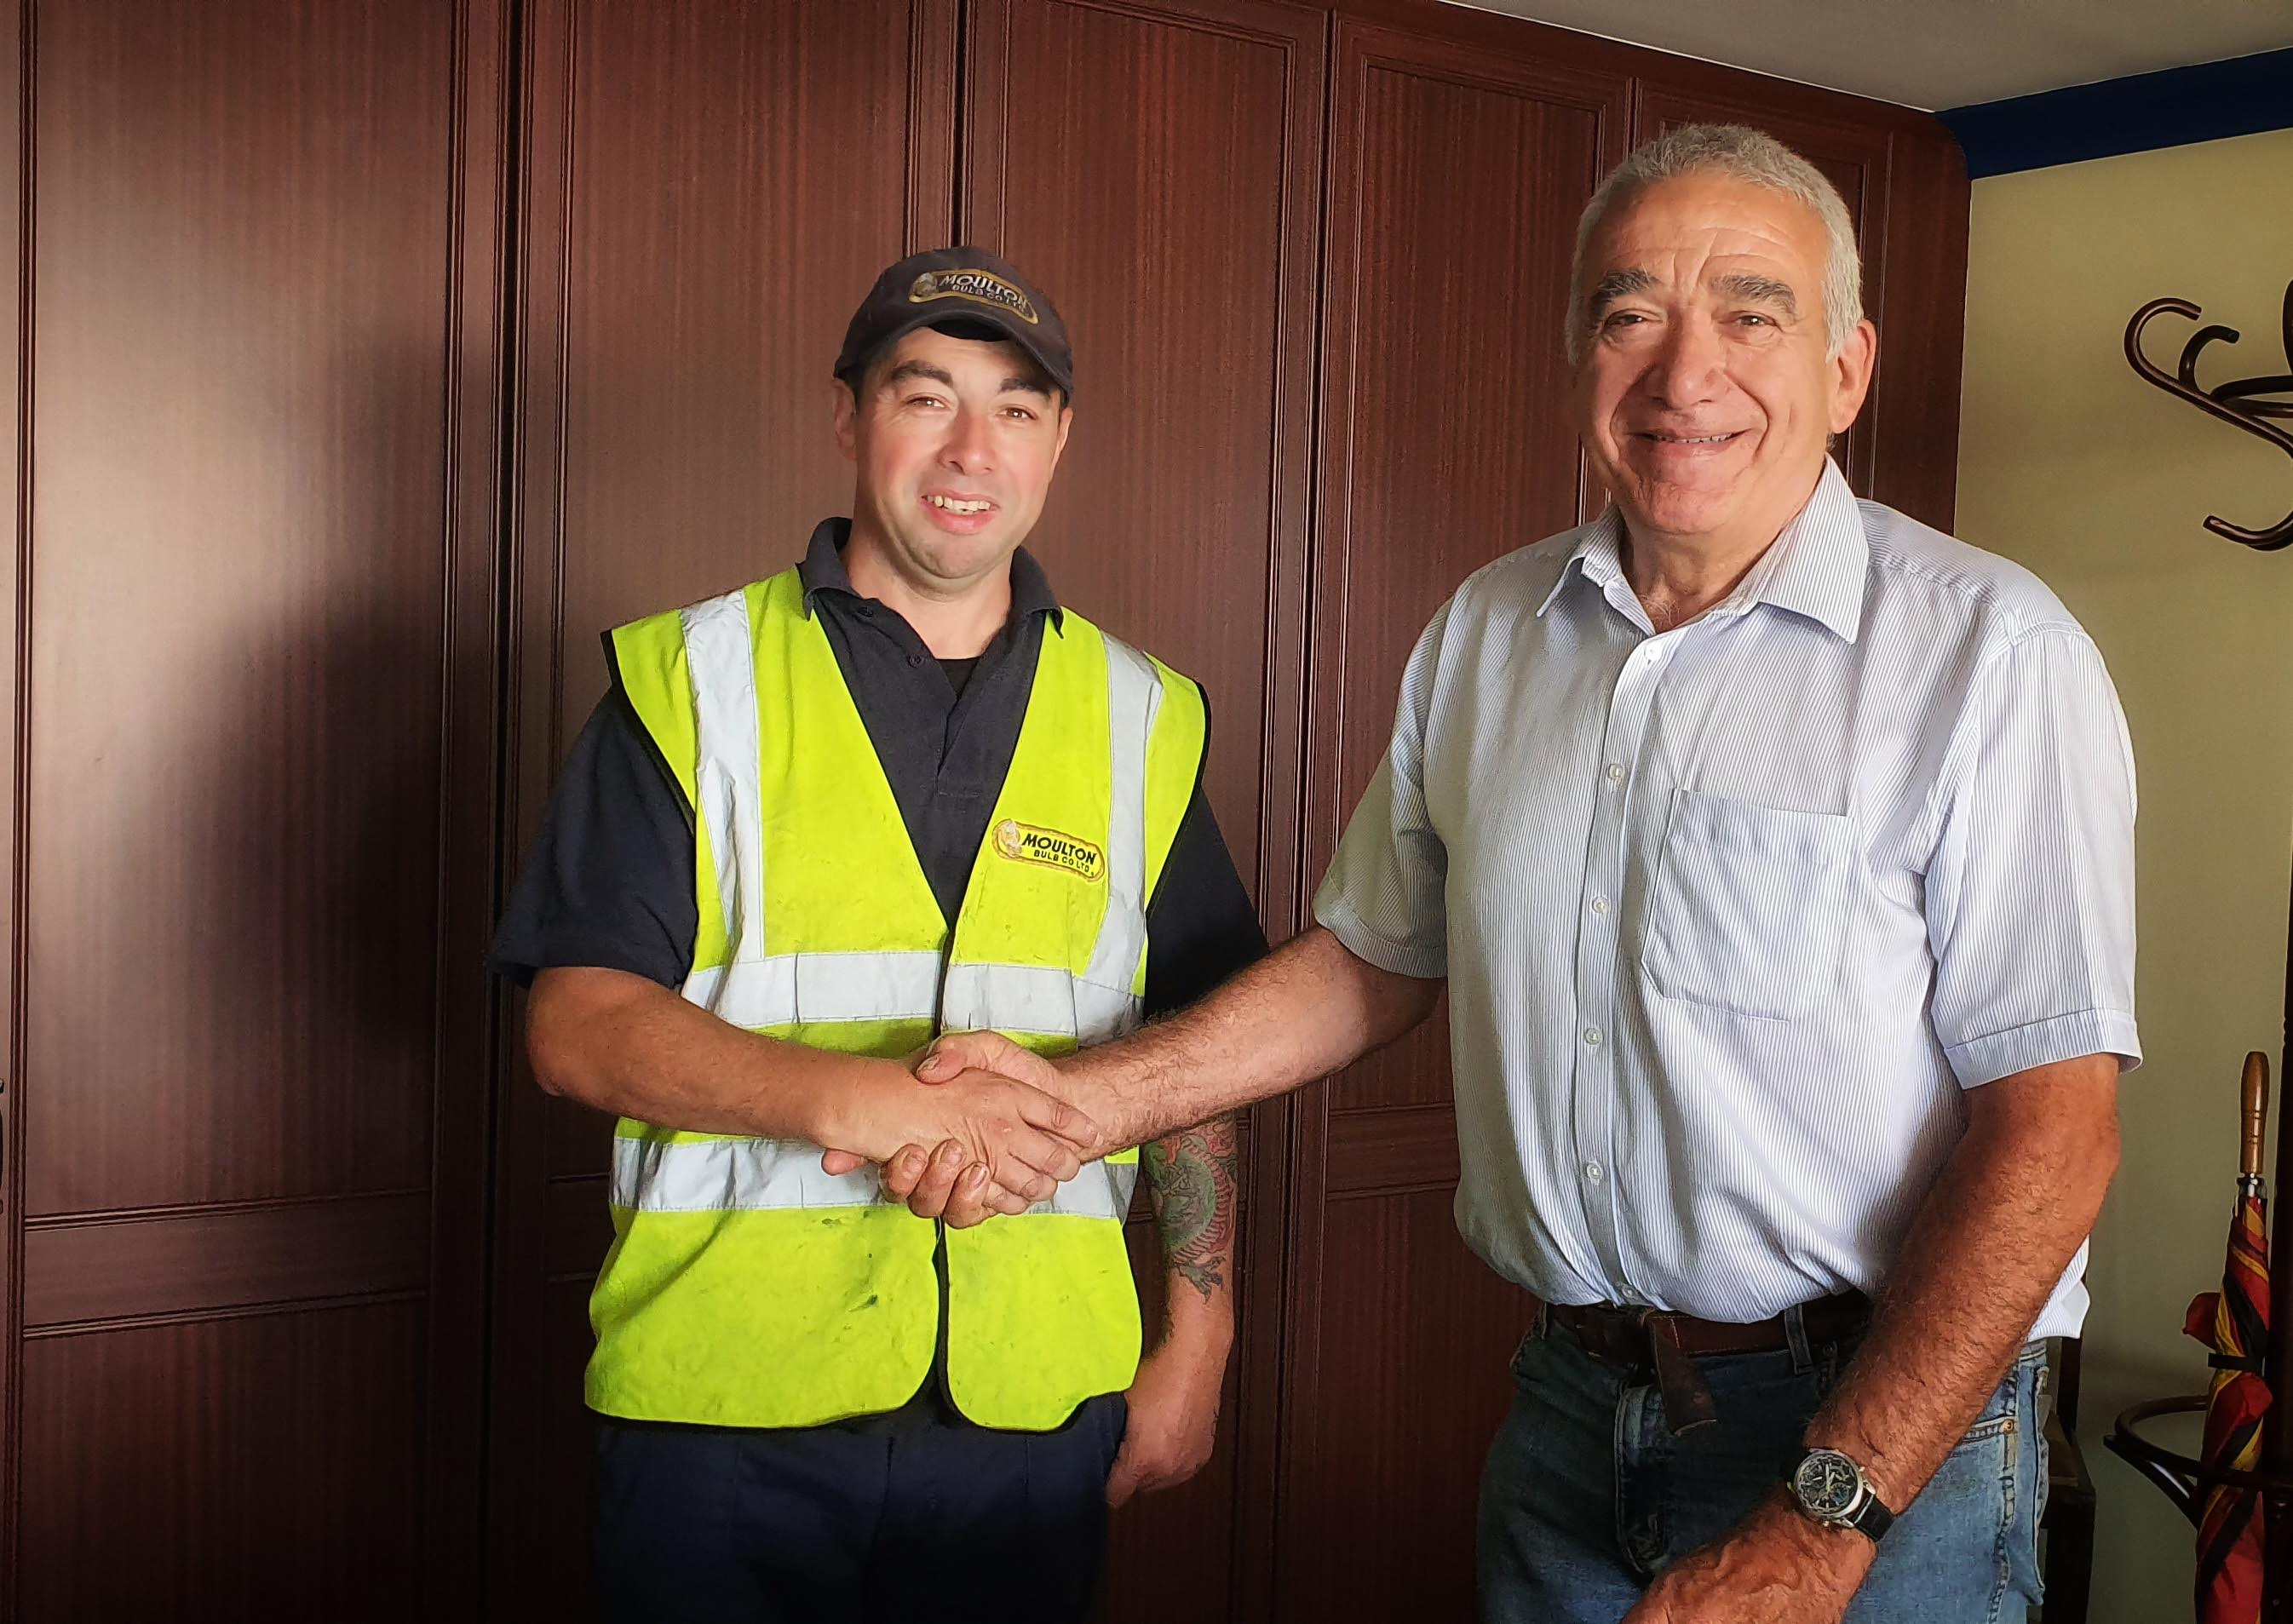 Dez Croft congratulated by Robert Oldershaw for his long service award